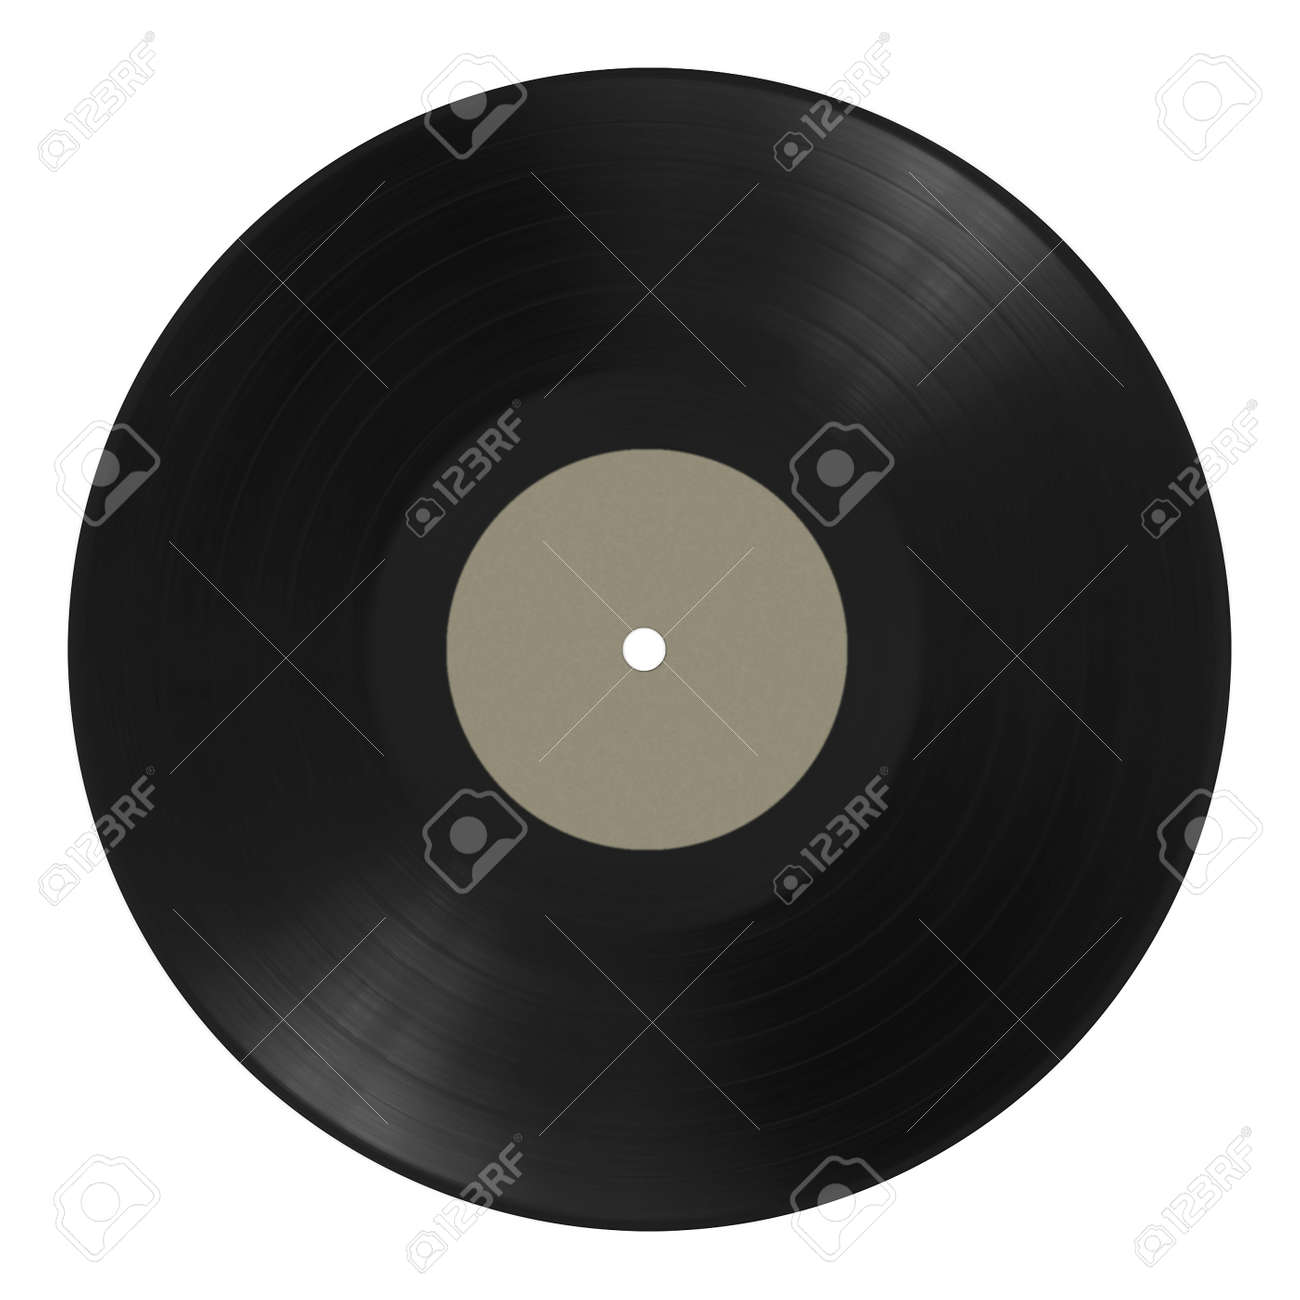 old vinyl music record isolated on white background Stock Photo - 15687870